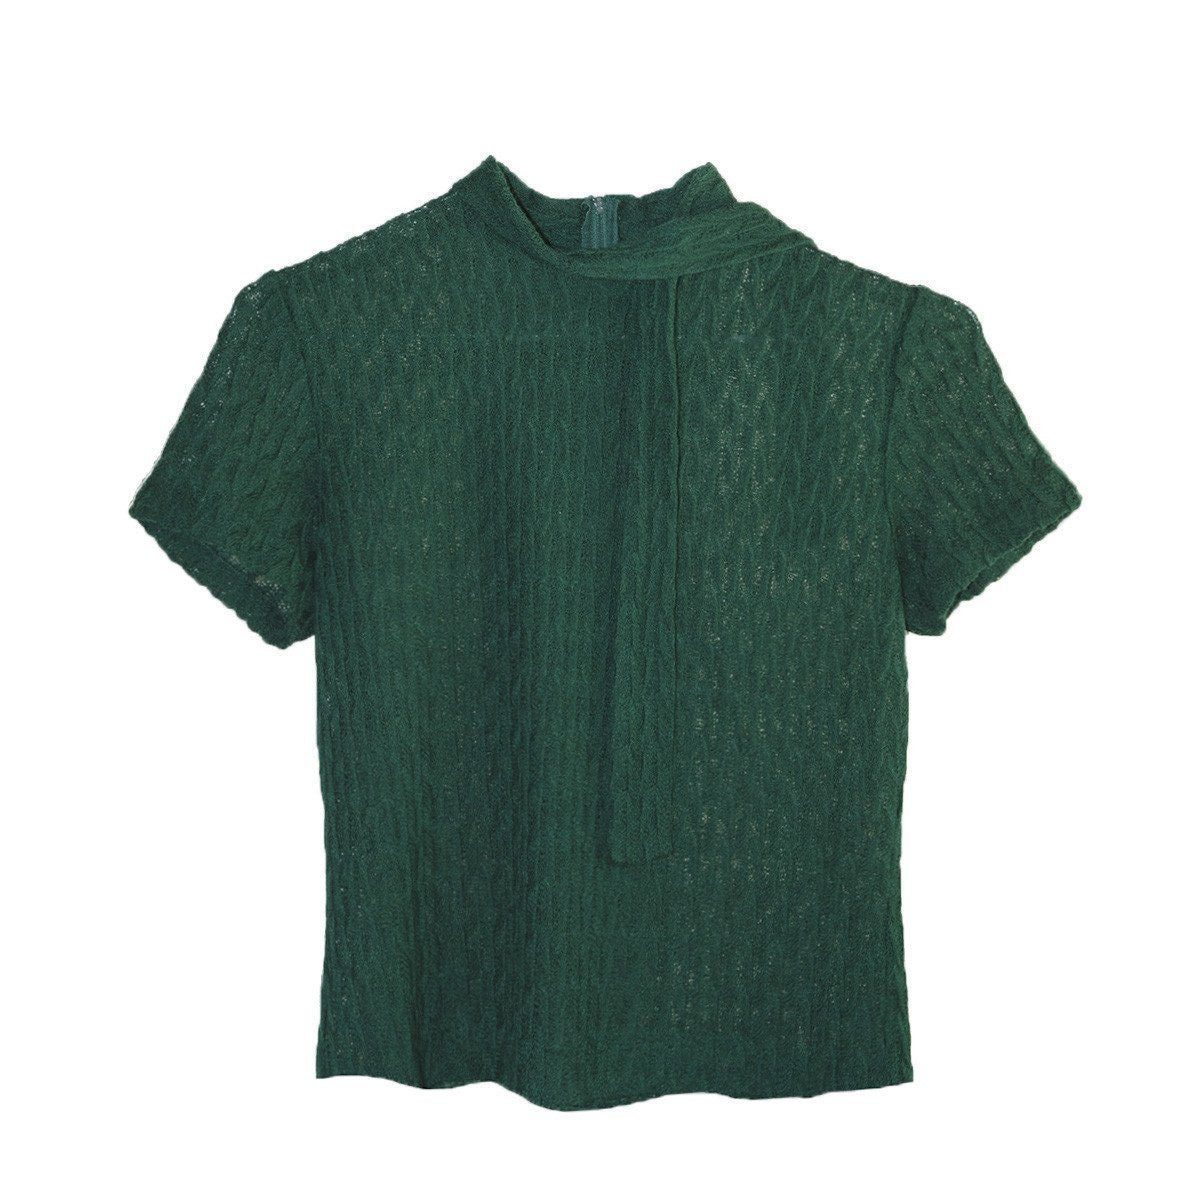 1950s Emerald Green Short Sleeve Sweater 6, Self Tie, Size Small